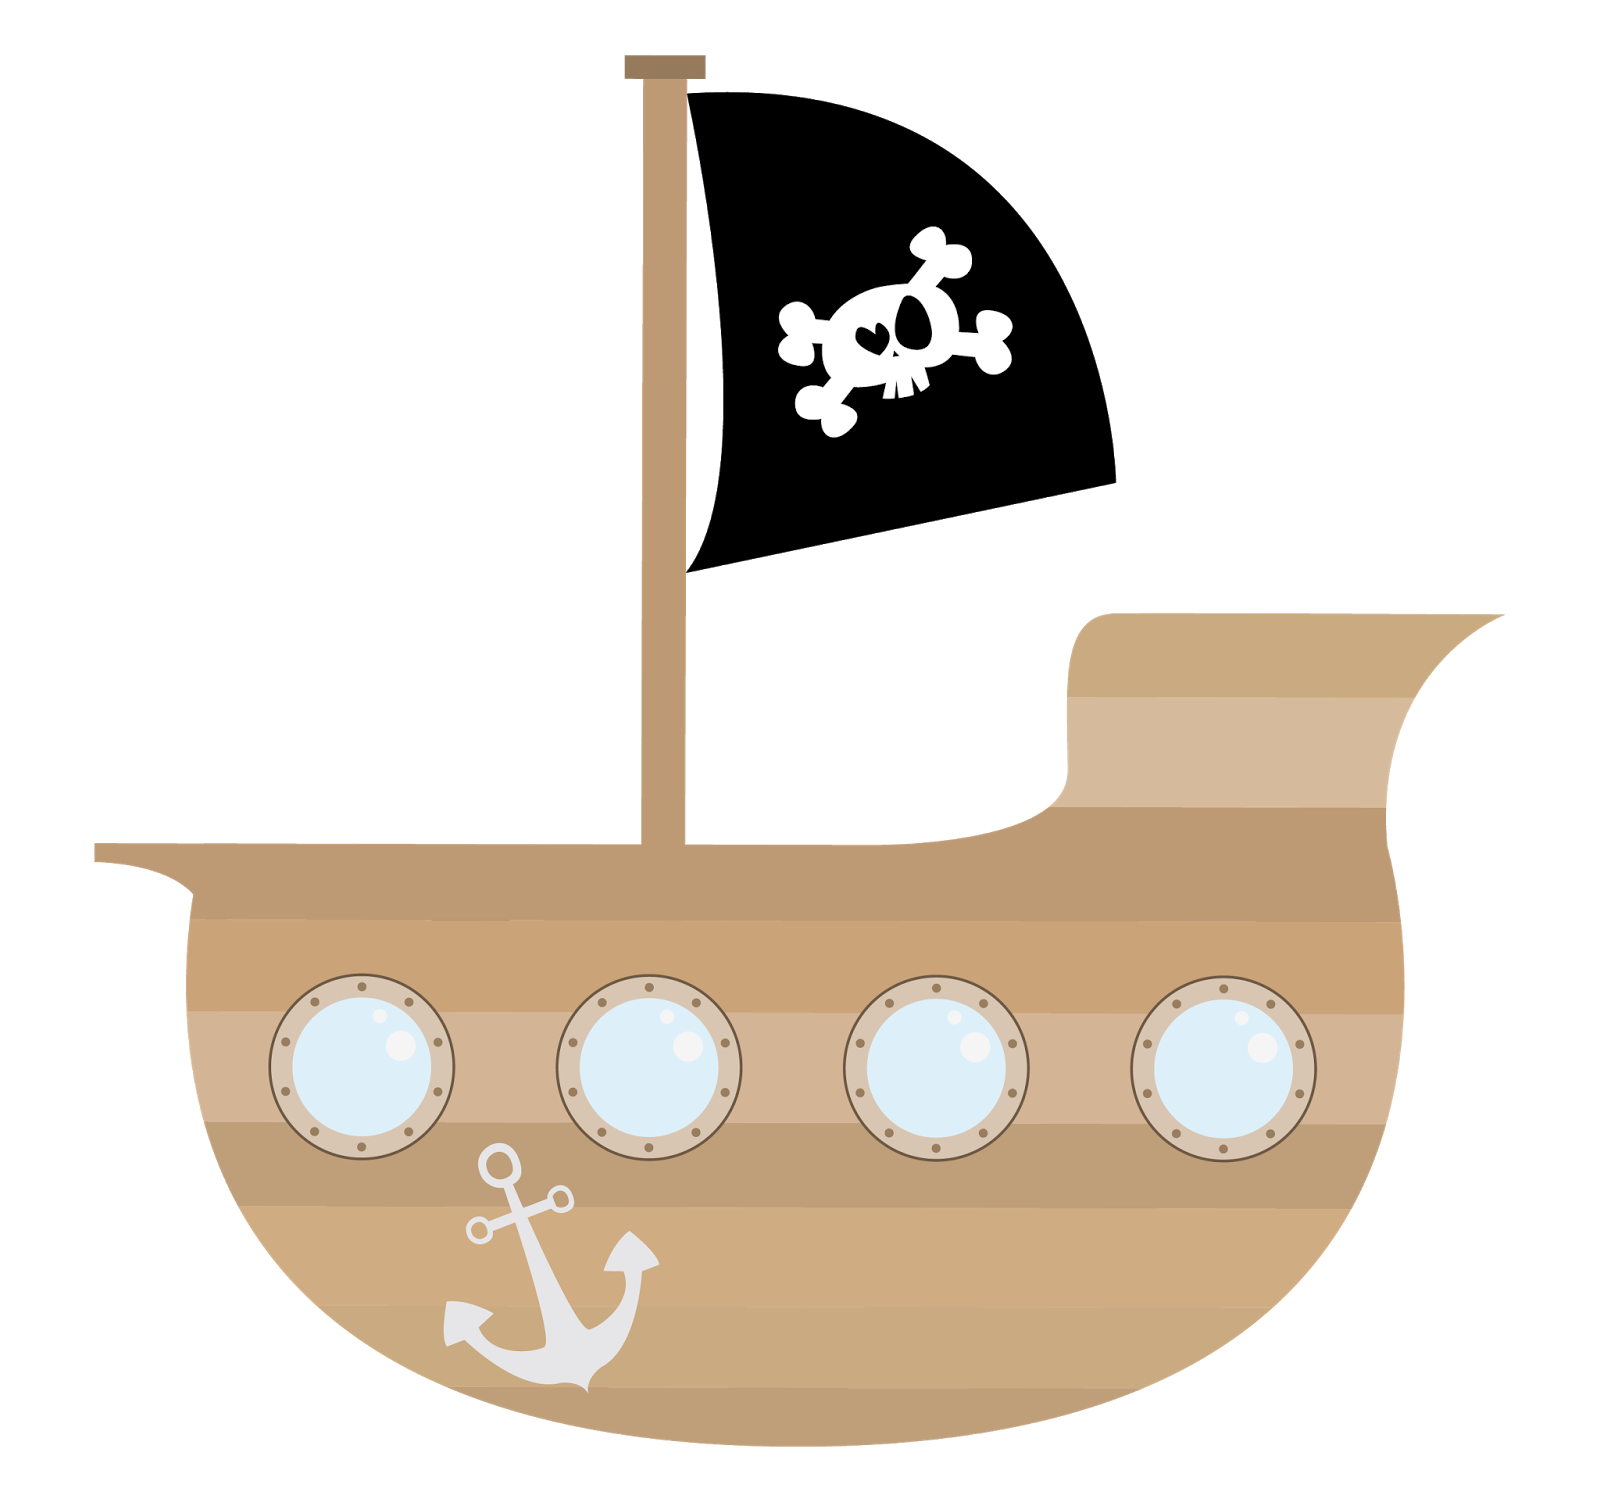 Shell clipart kid. Pirate ship story pinterest